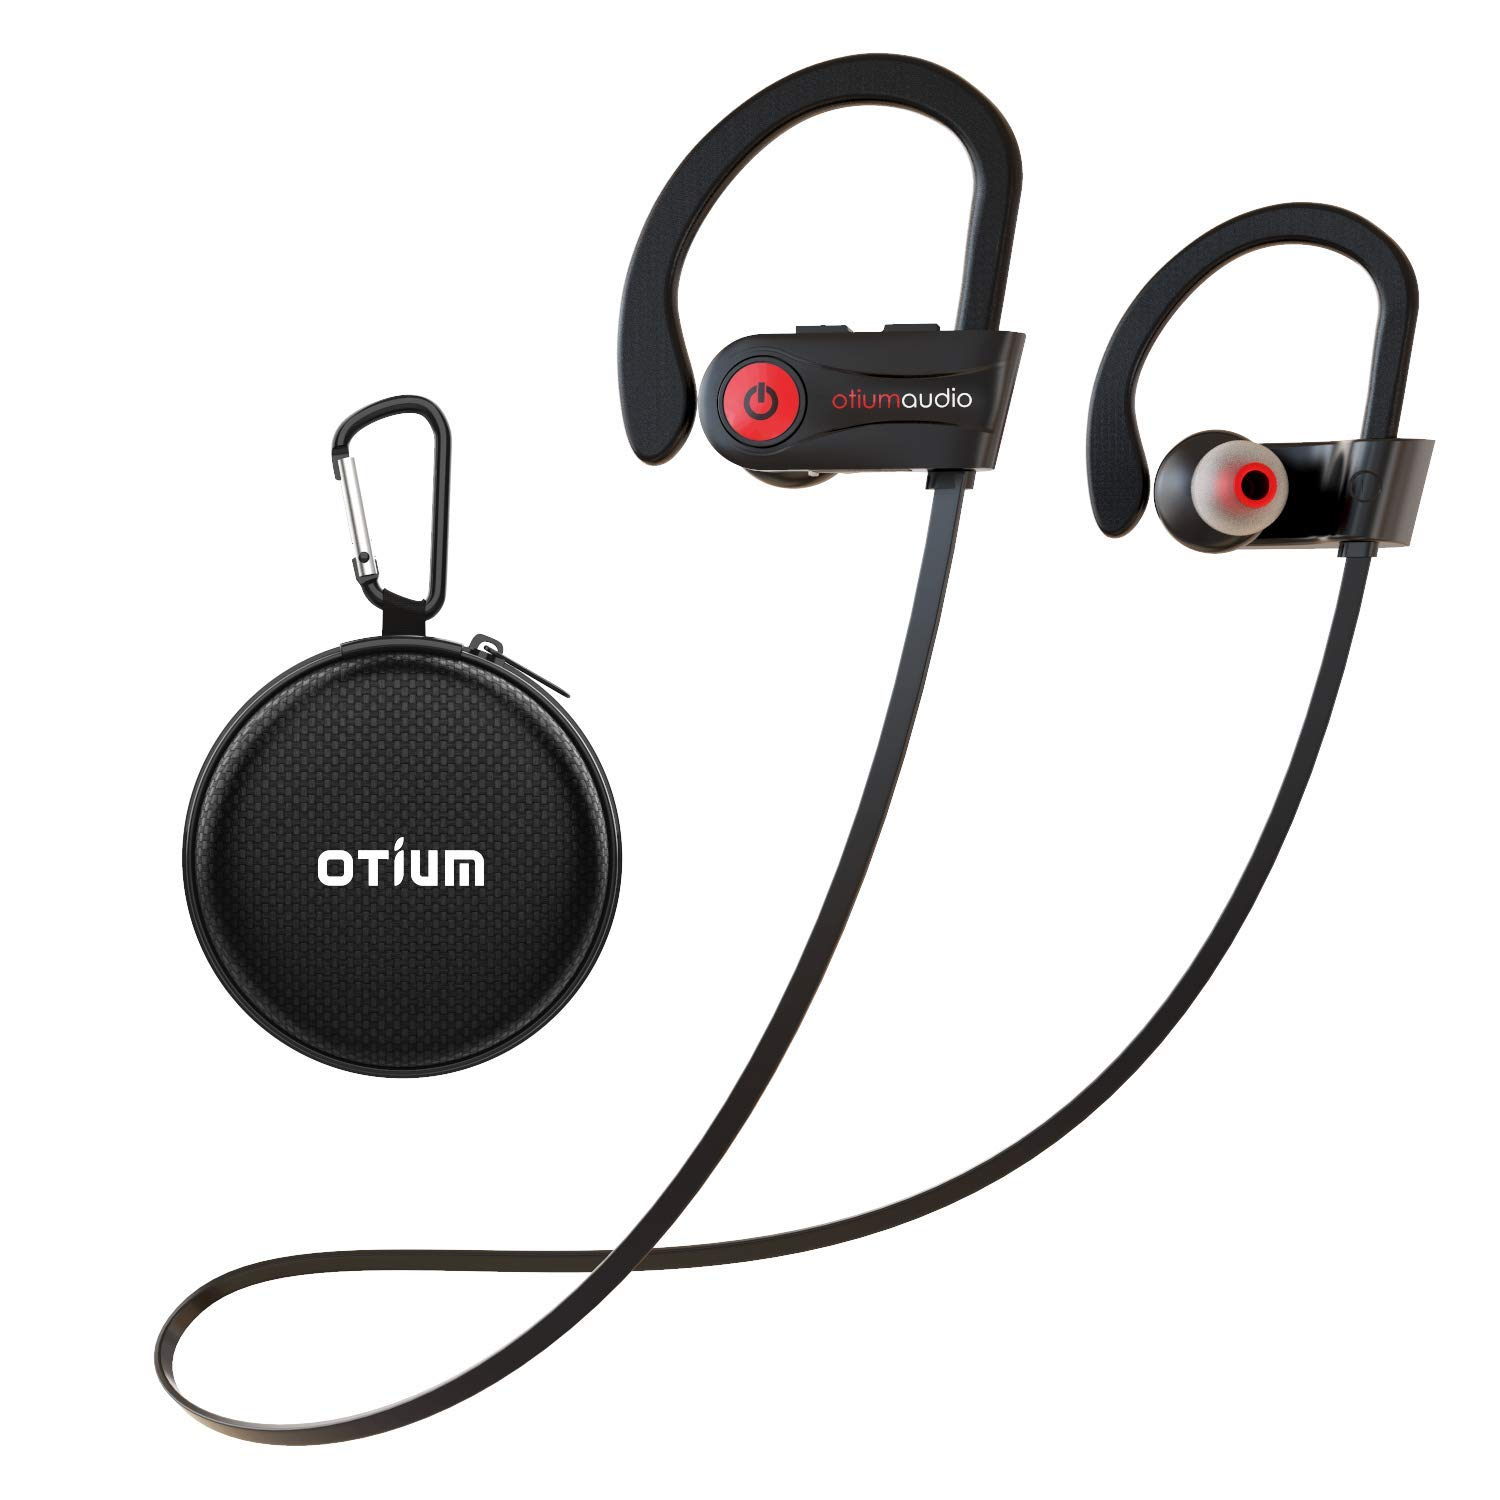 Otium Wireless Earphones Running Sport Headphones IPX7 Waterproof Earbuds